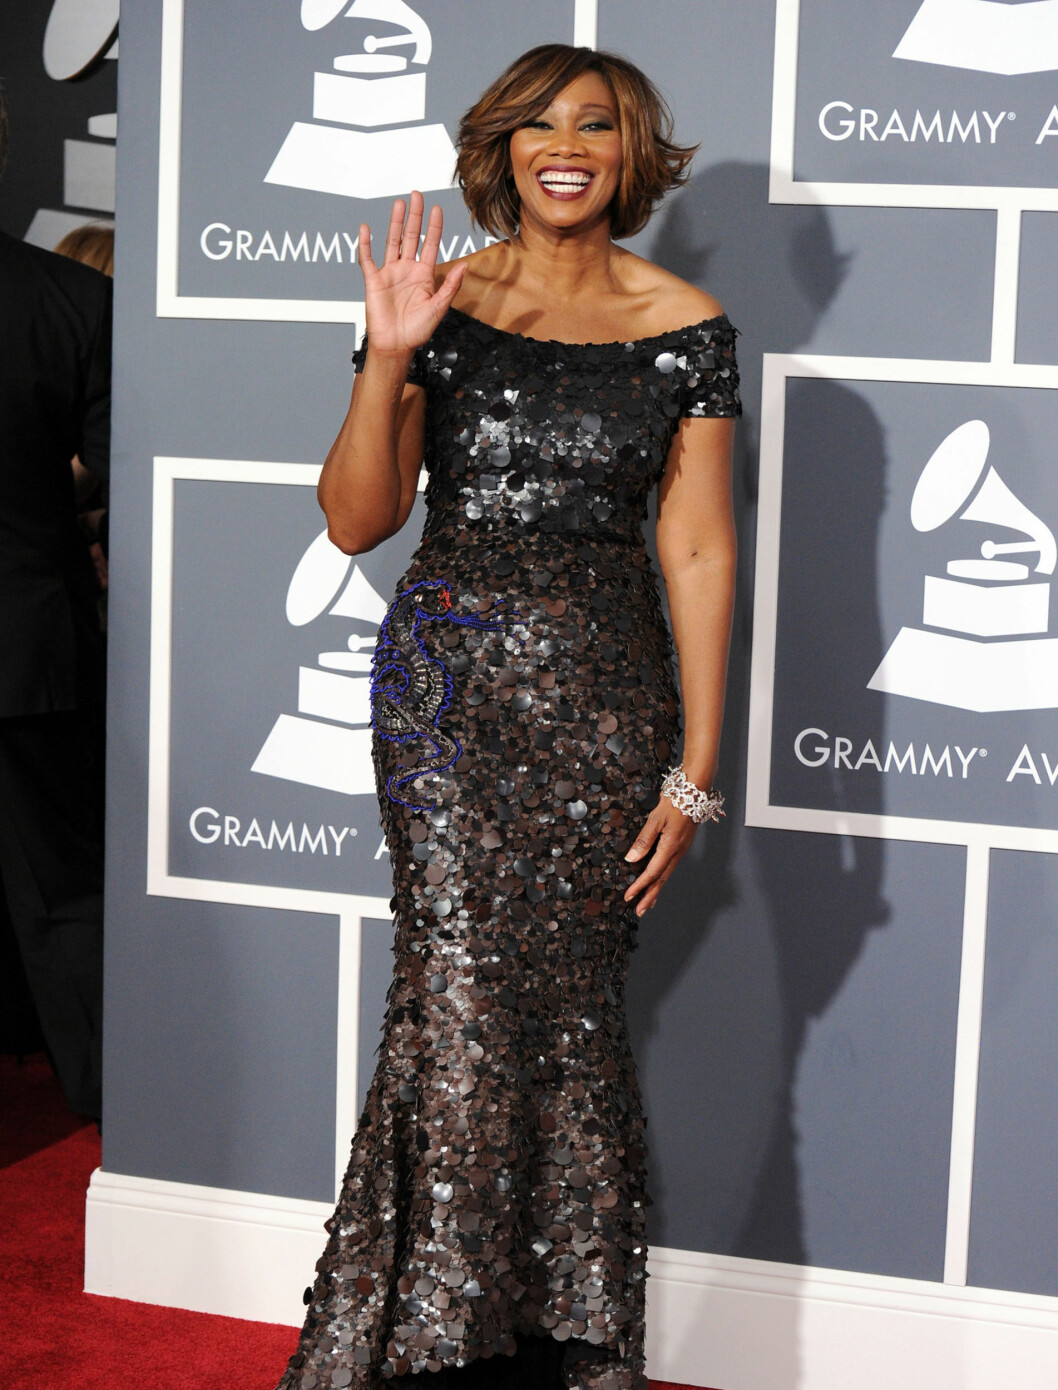 <strong>LOS ANGELES, CA - FEBRUARY 13:</strong>  Yolanda Adams arrives at The 53rd Annual GRAMMY Awards held at Staples Center on February 13, 2011 in Los Angeles, California.  (Photo by Steve Granitz/WireImage) Foto: All Over Press